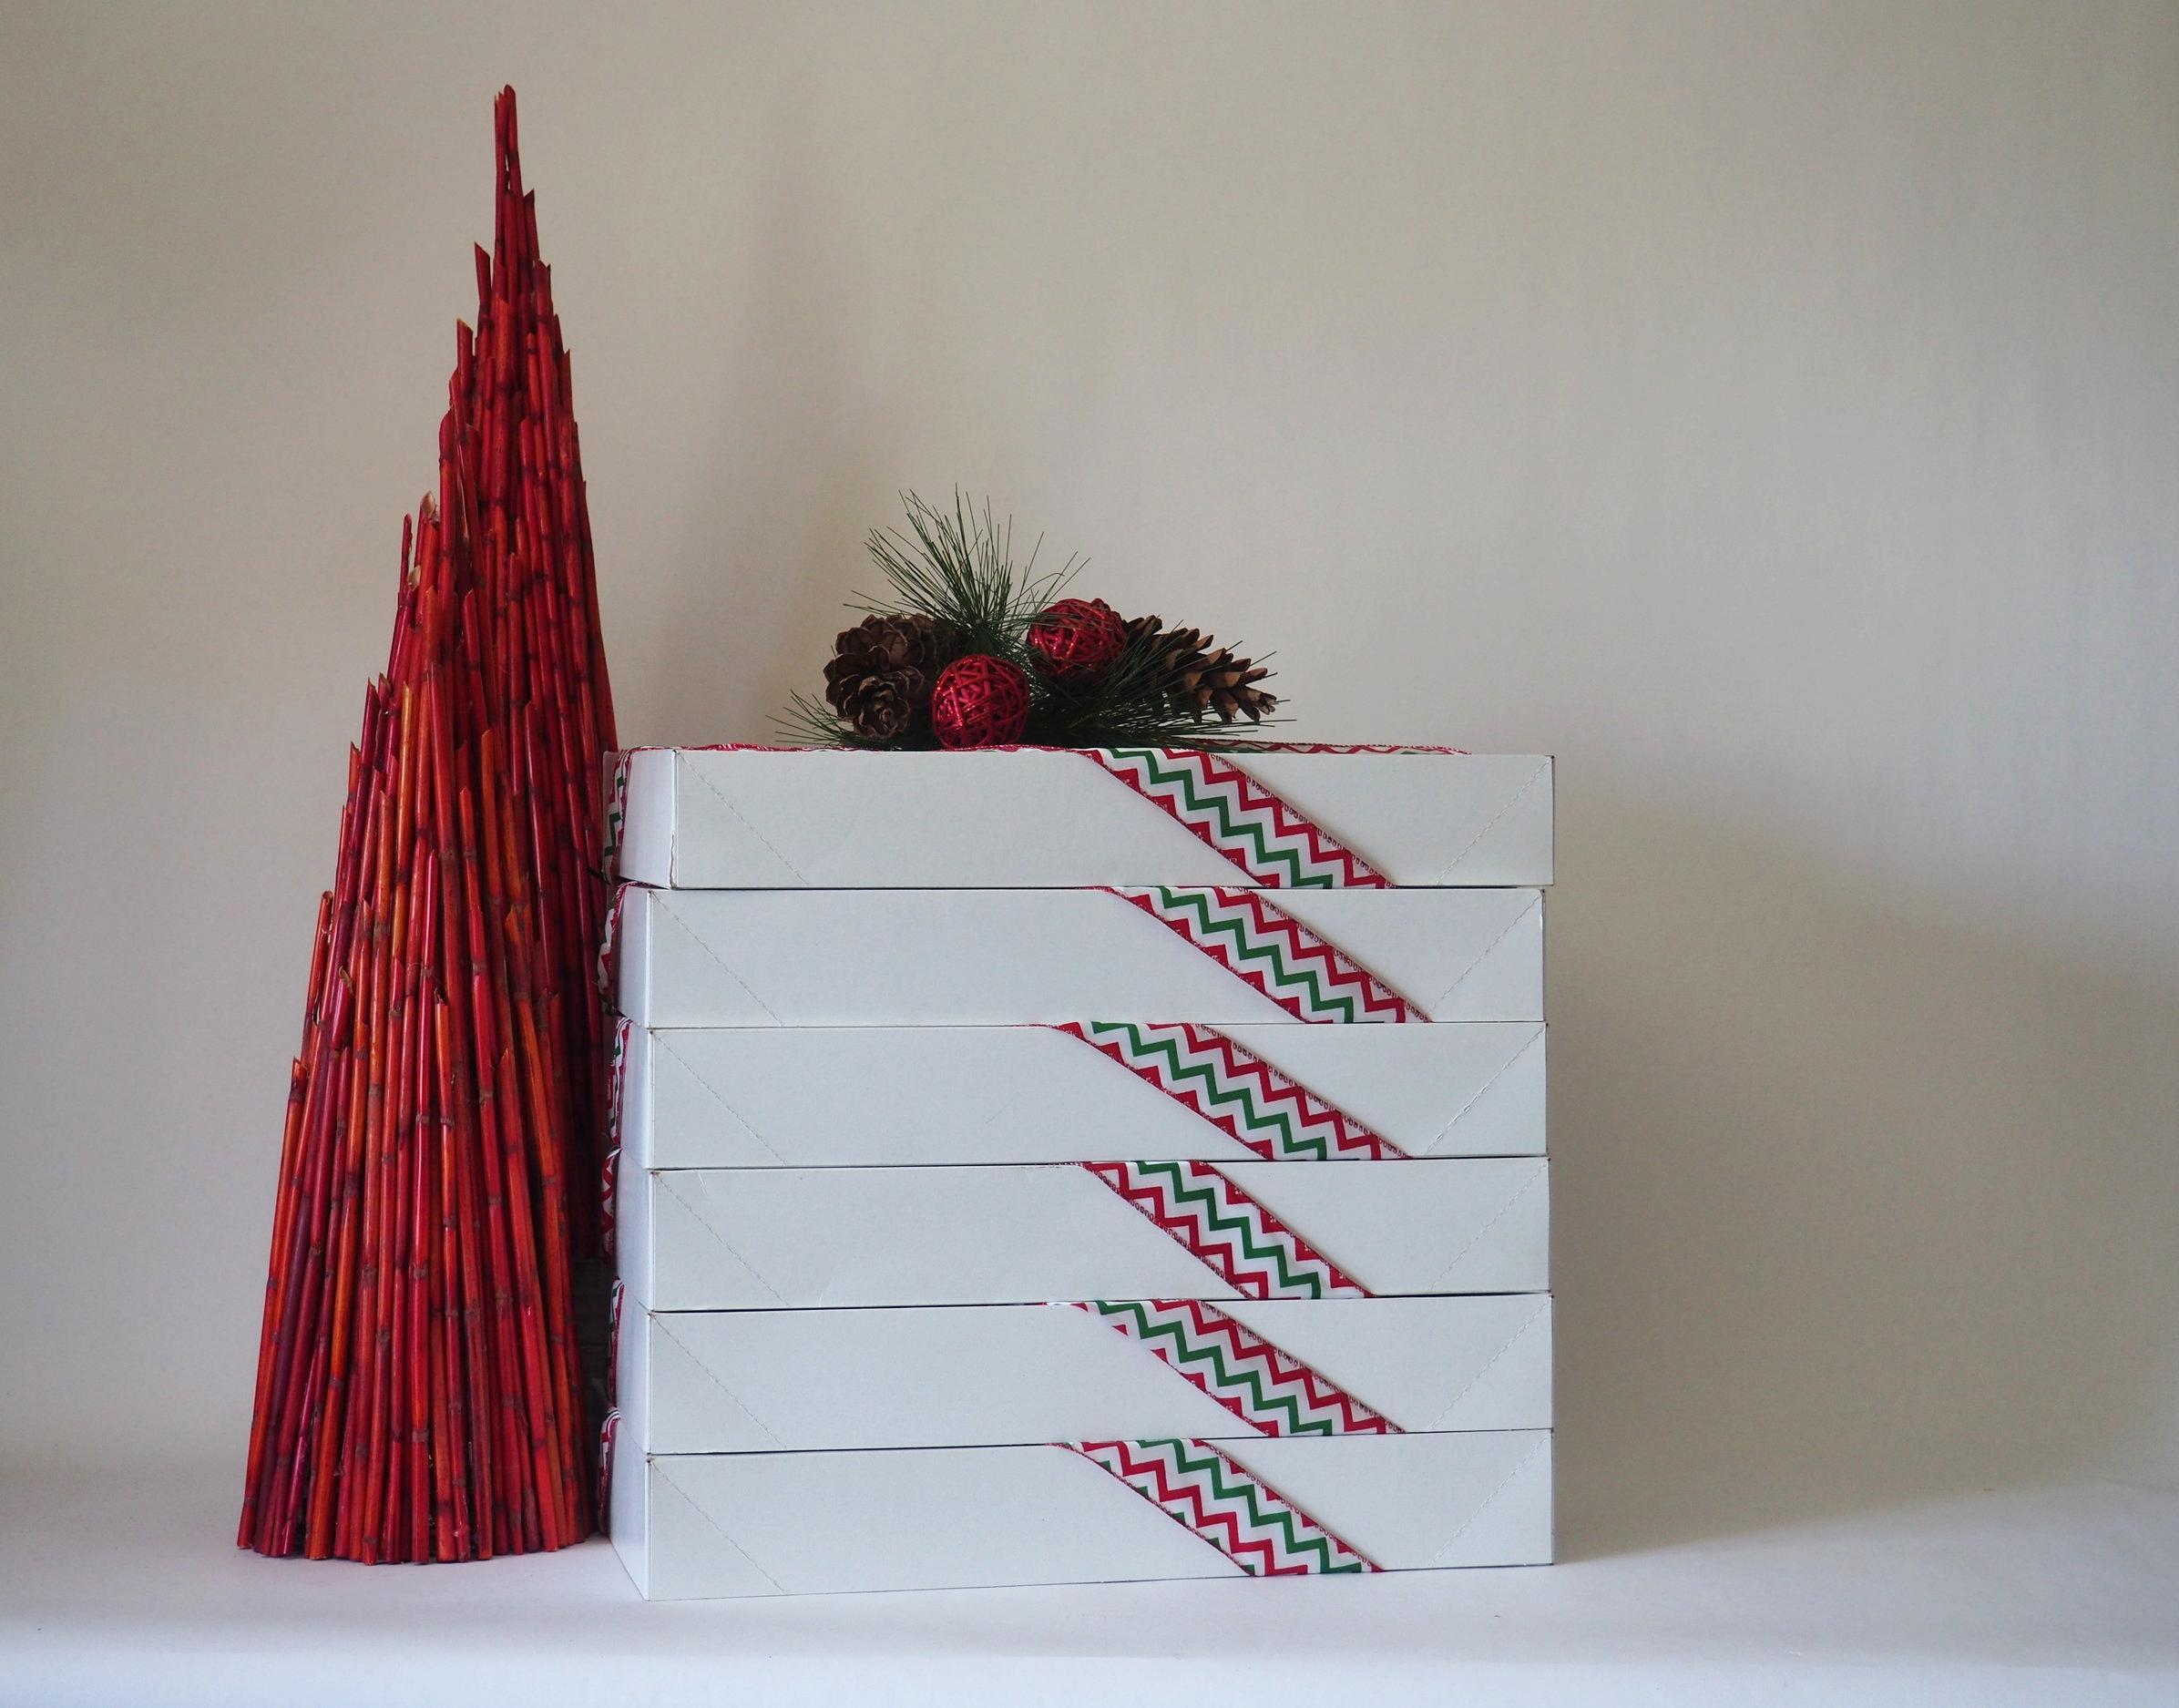 We provide professional boxes and coordinating ribbon for our products -all you have to do is give the gift!